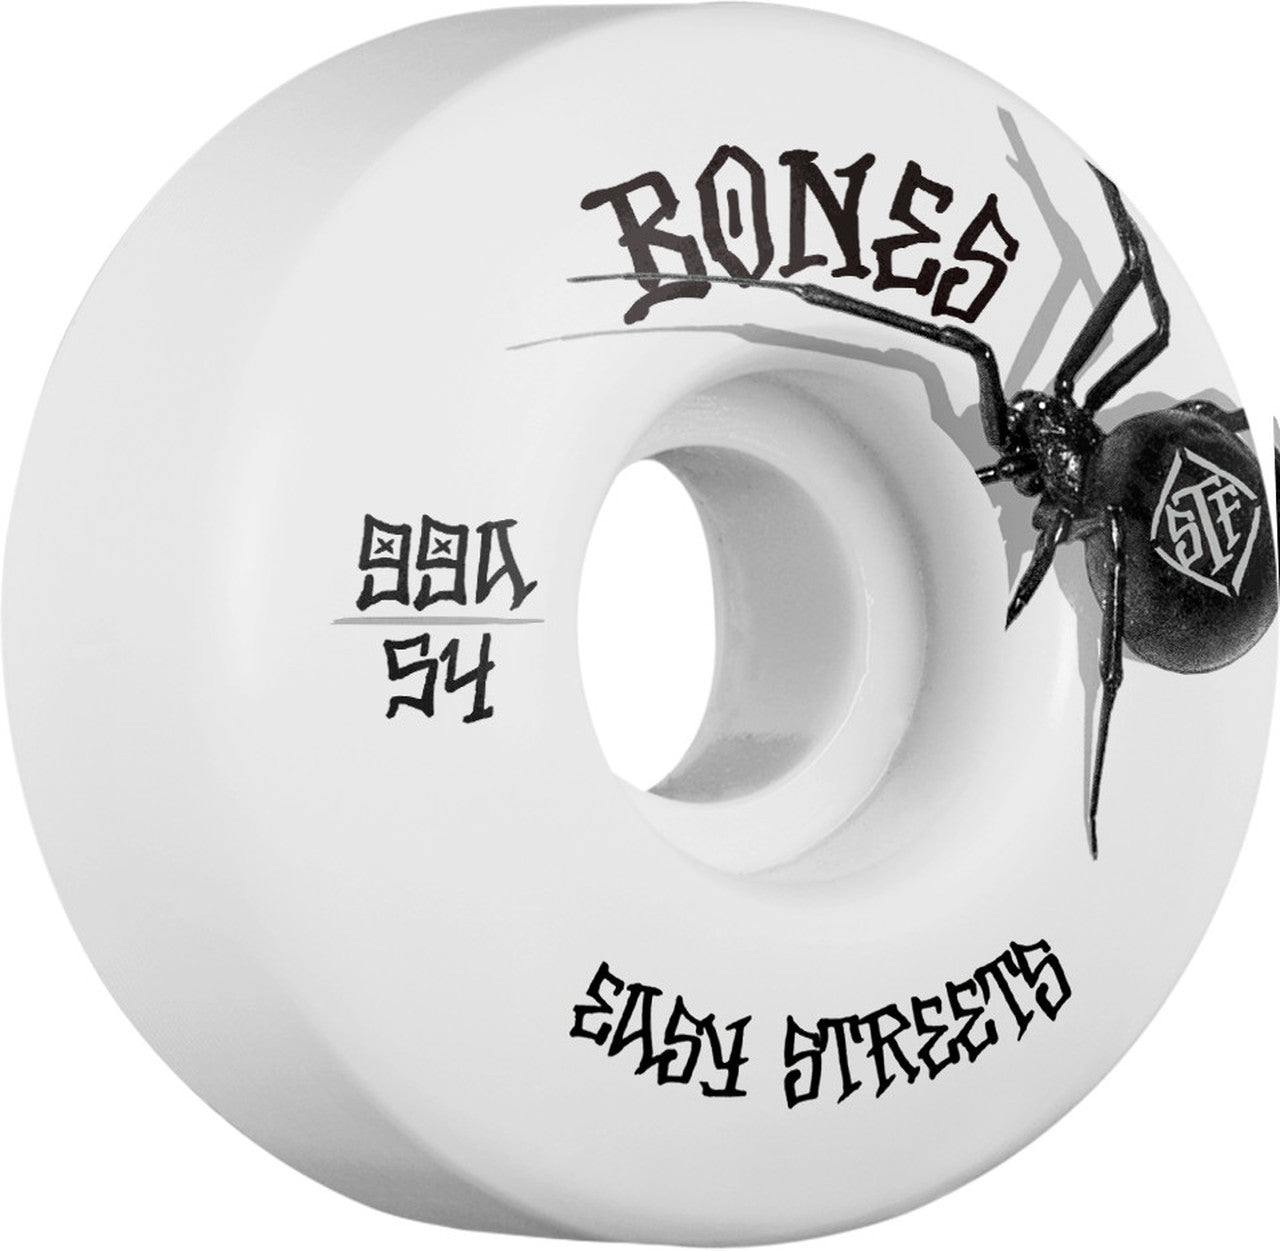 Bones V1 Standard Street Tech Formula Black Widow 54mm 99A Wheels 4 Pack